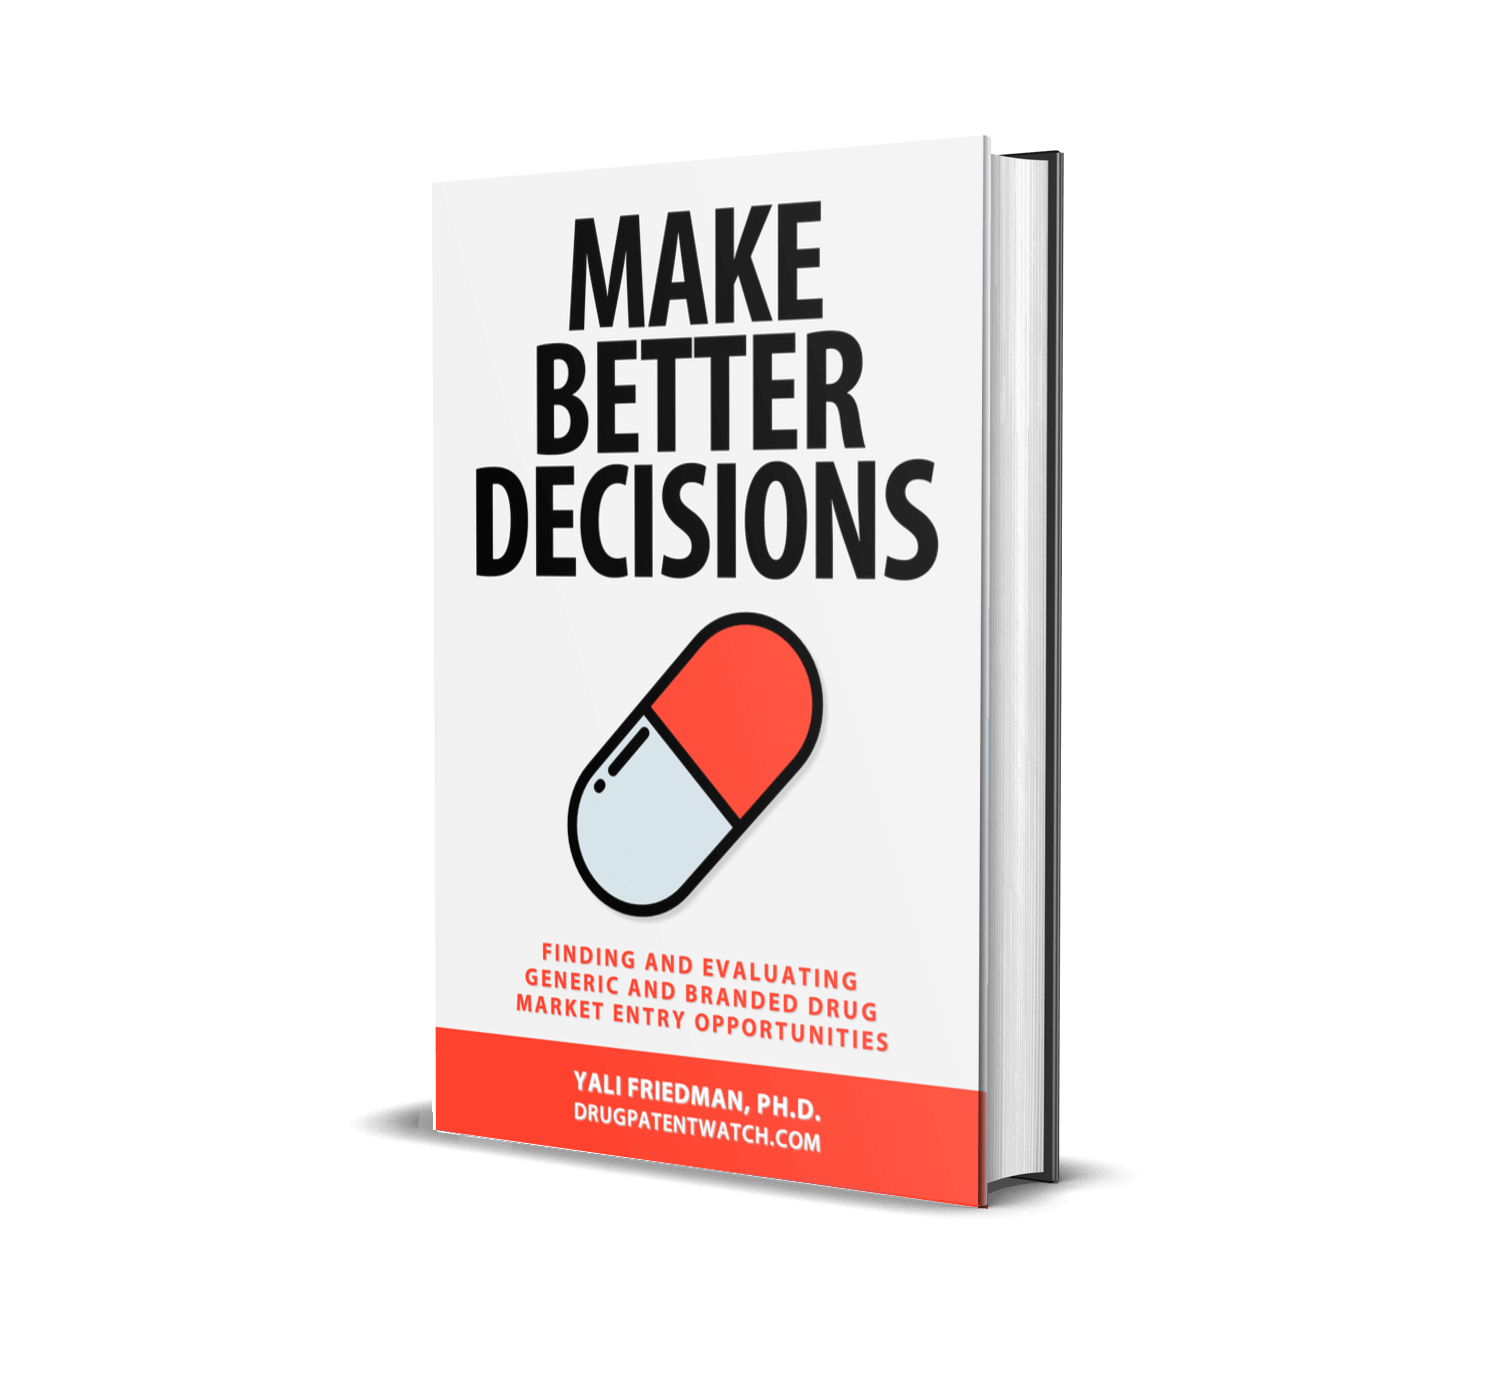 Make Better Decisions: Finding and Evaluating Generic and Branded Drug Market Entry Opportunities